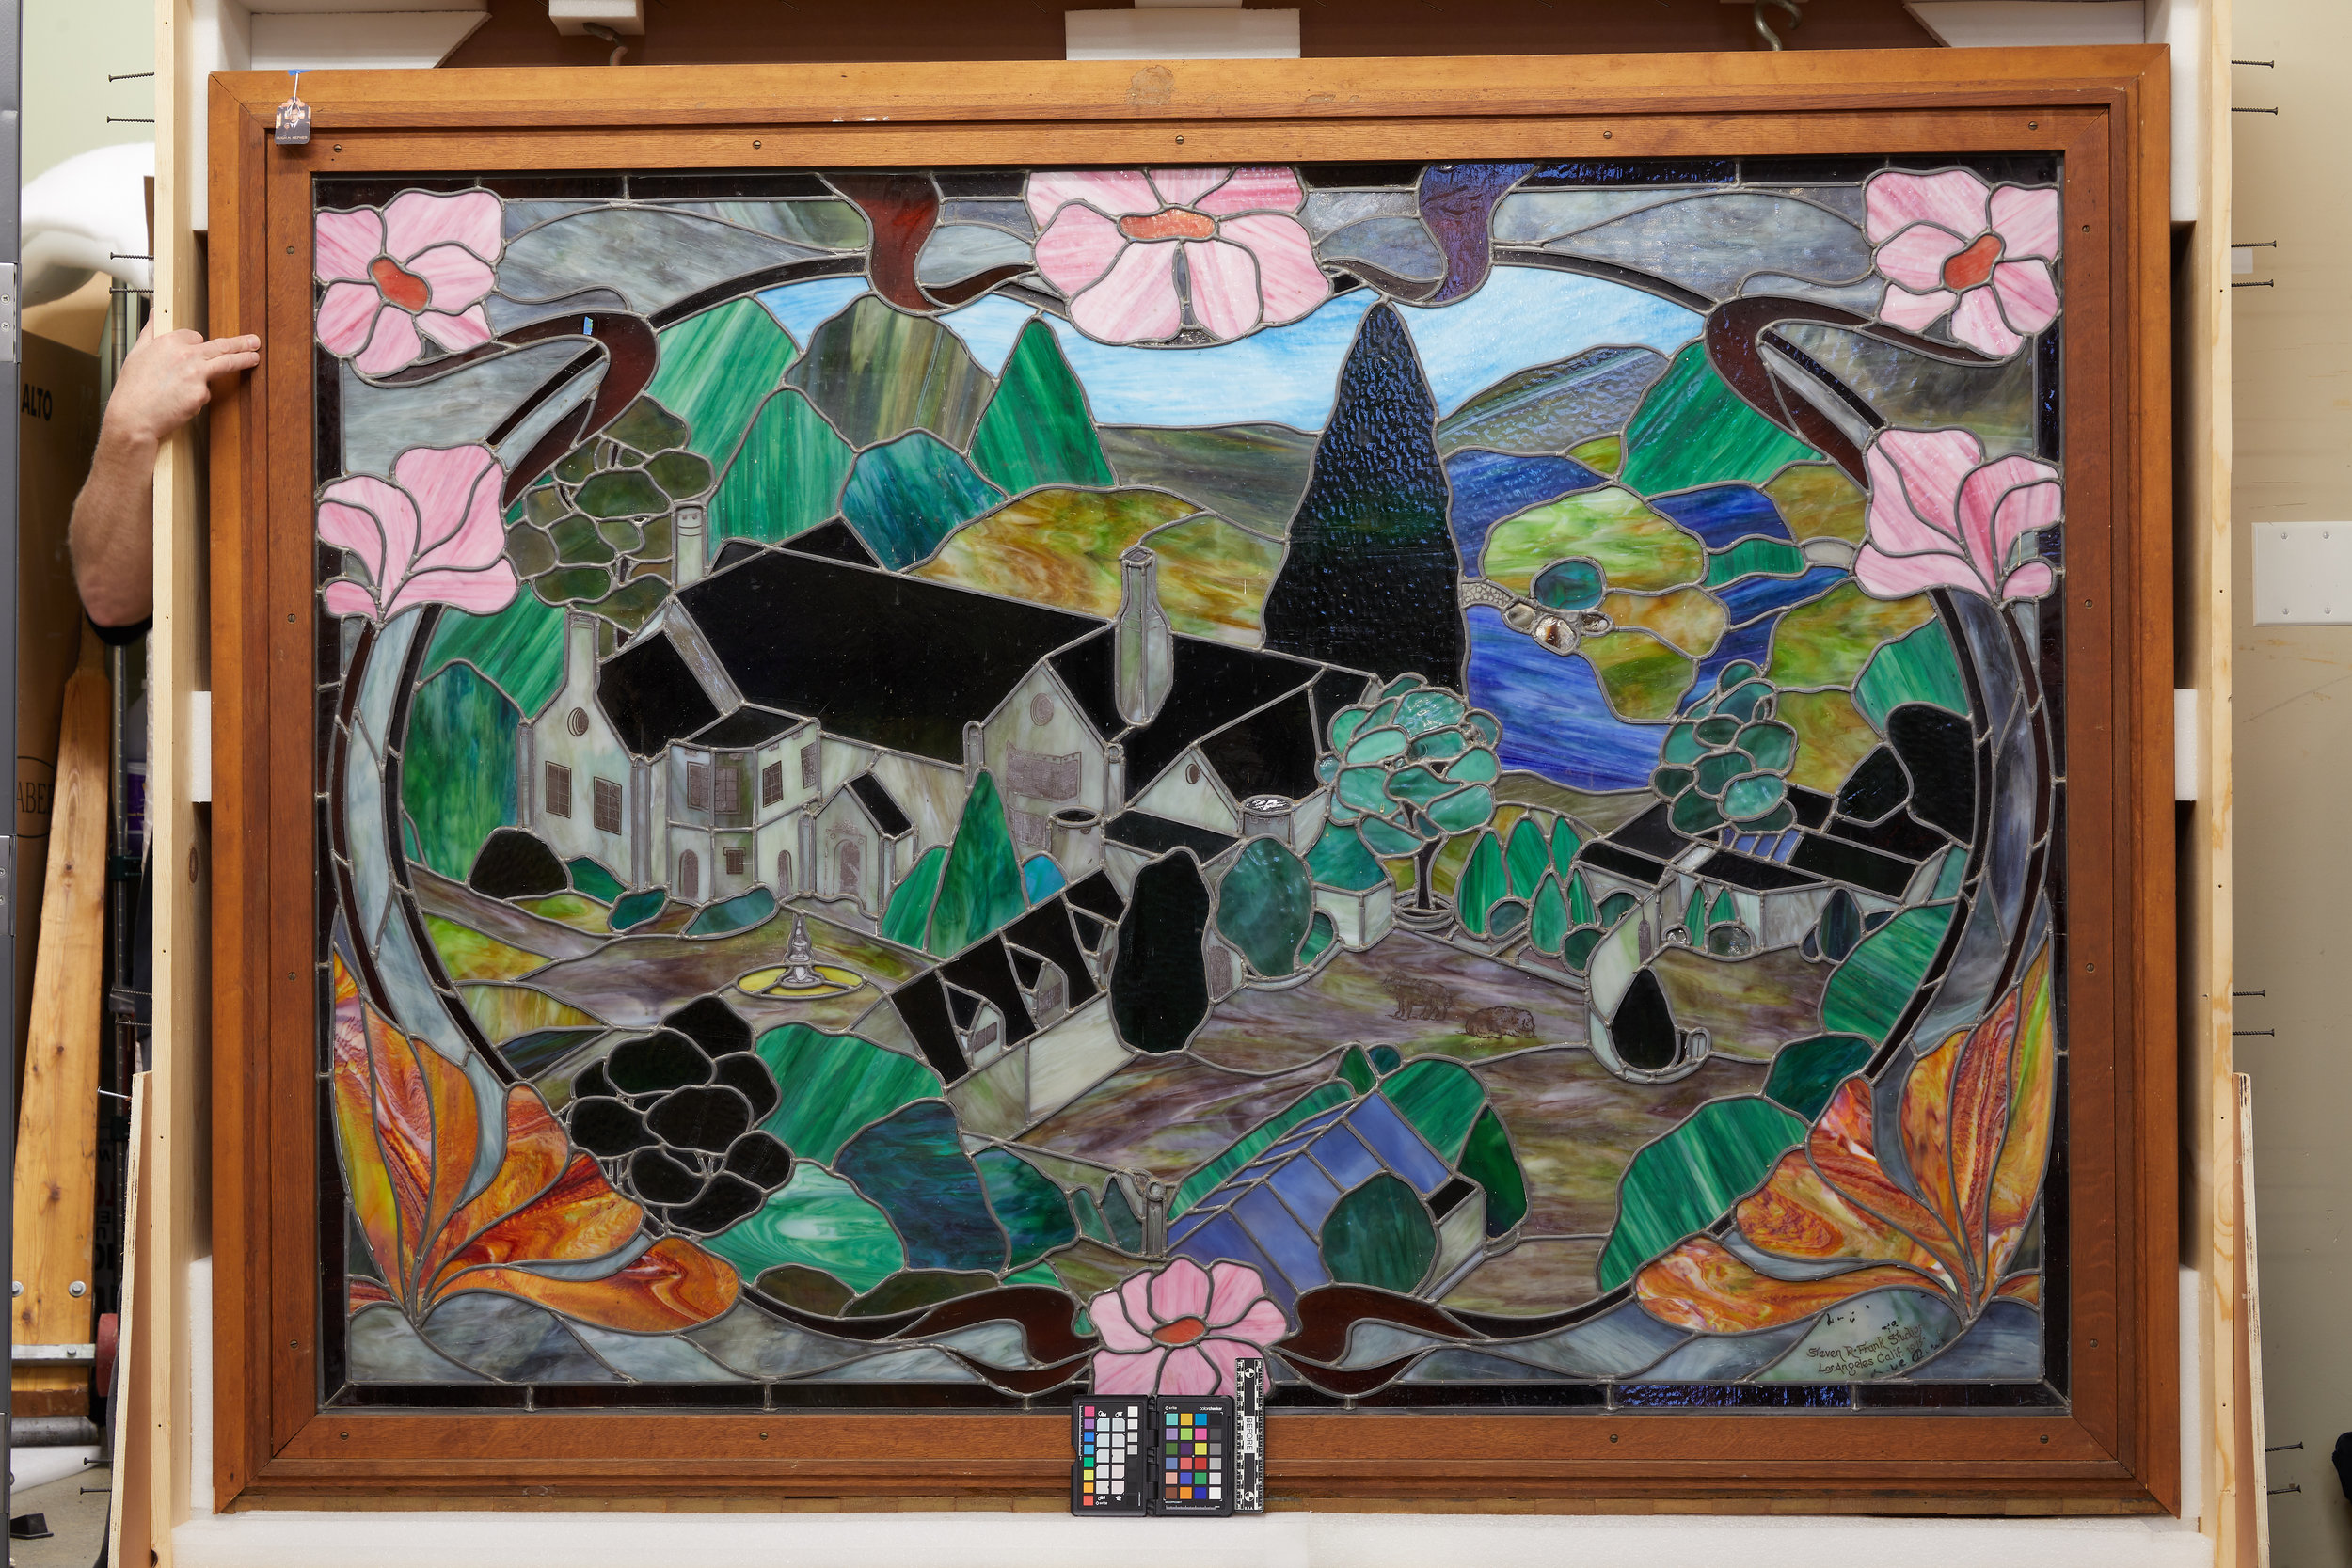 The stained-glass panel before treatment.